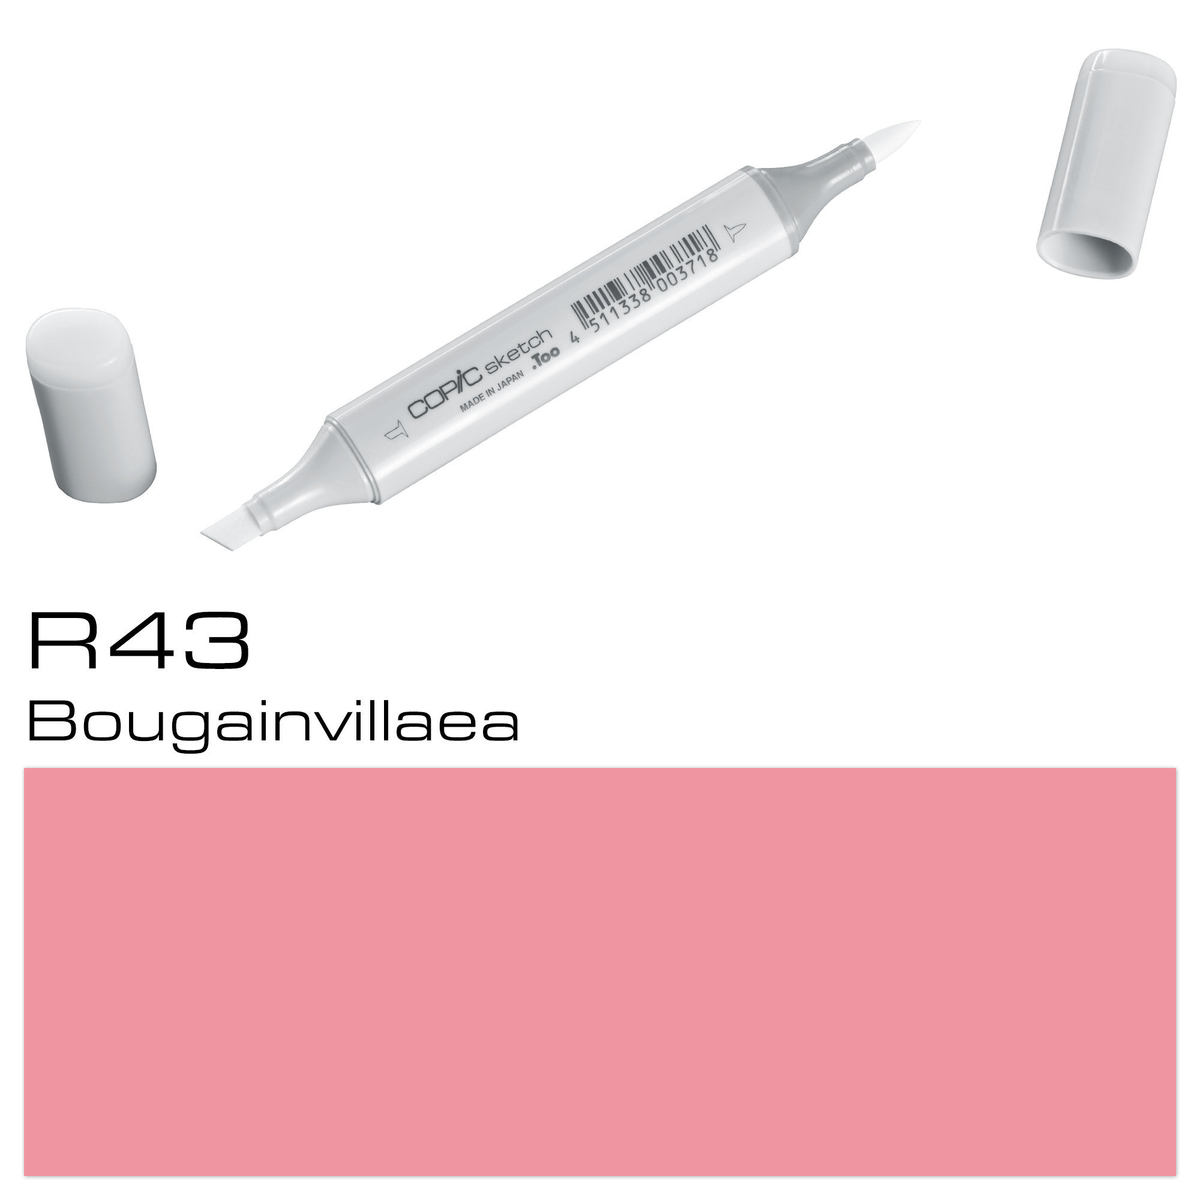 Copic Sketch R 43 bougainvilli